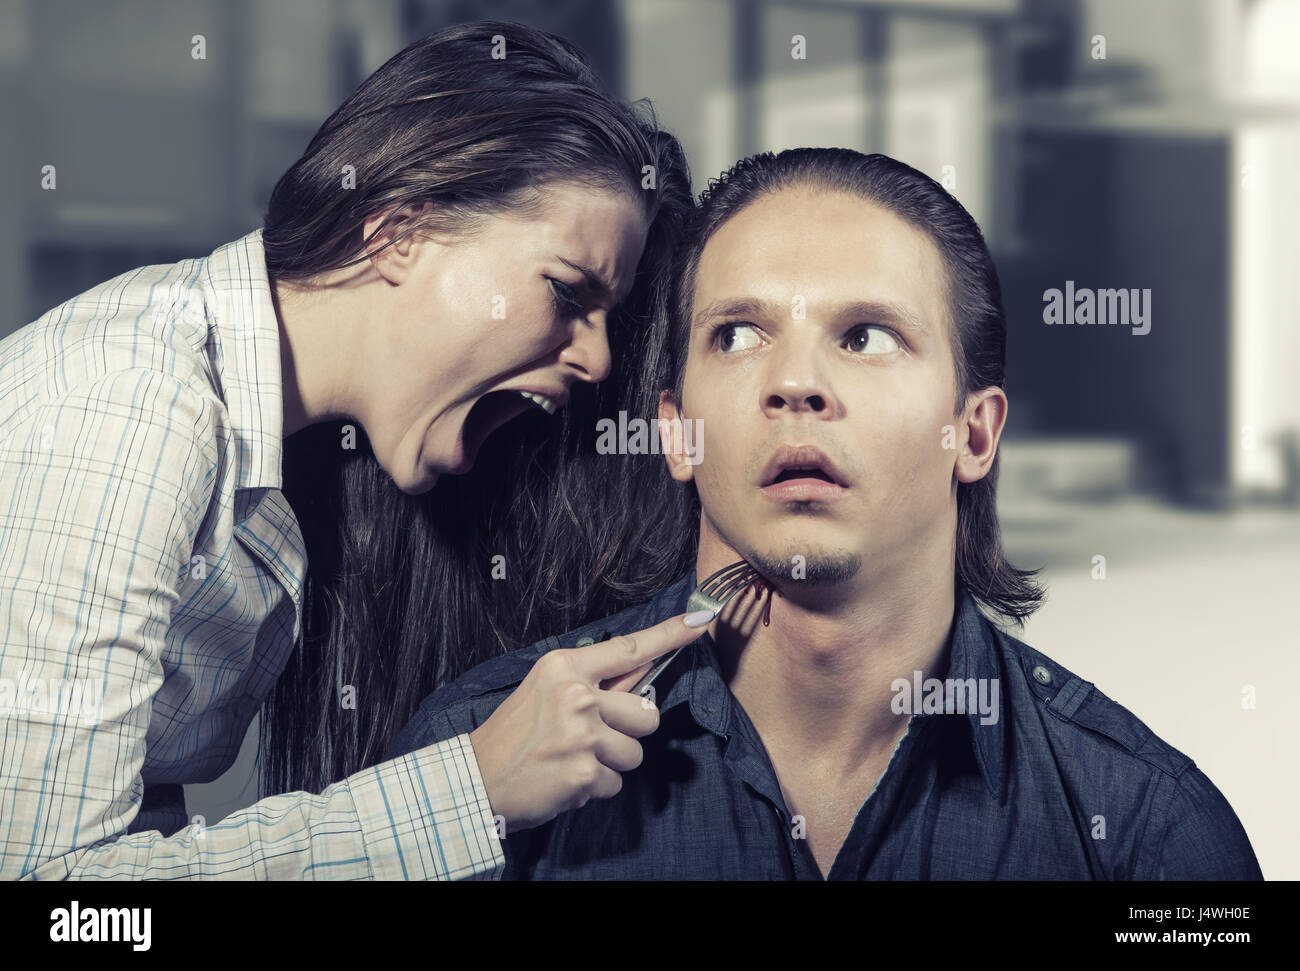 Family quarrel. Young woman stabs husband's throat - Stock Image